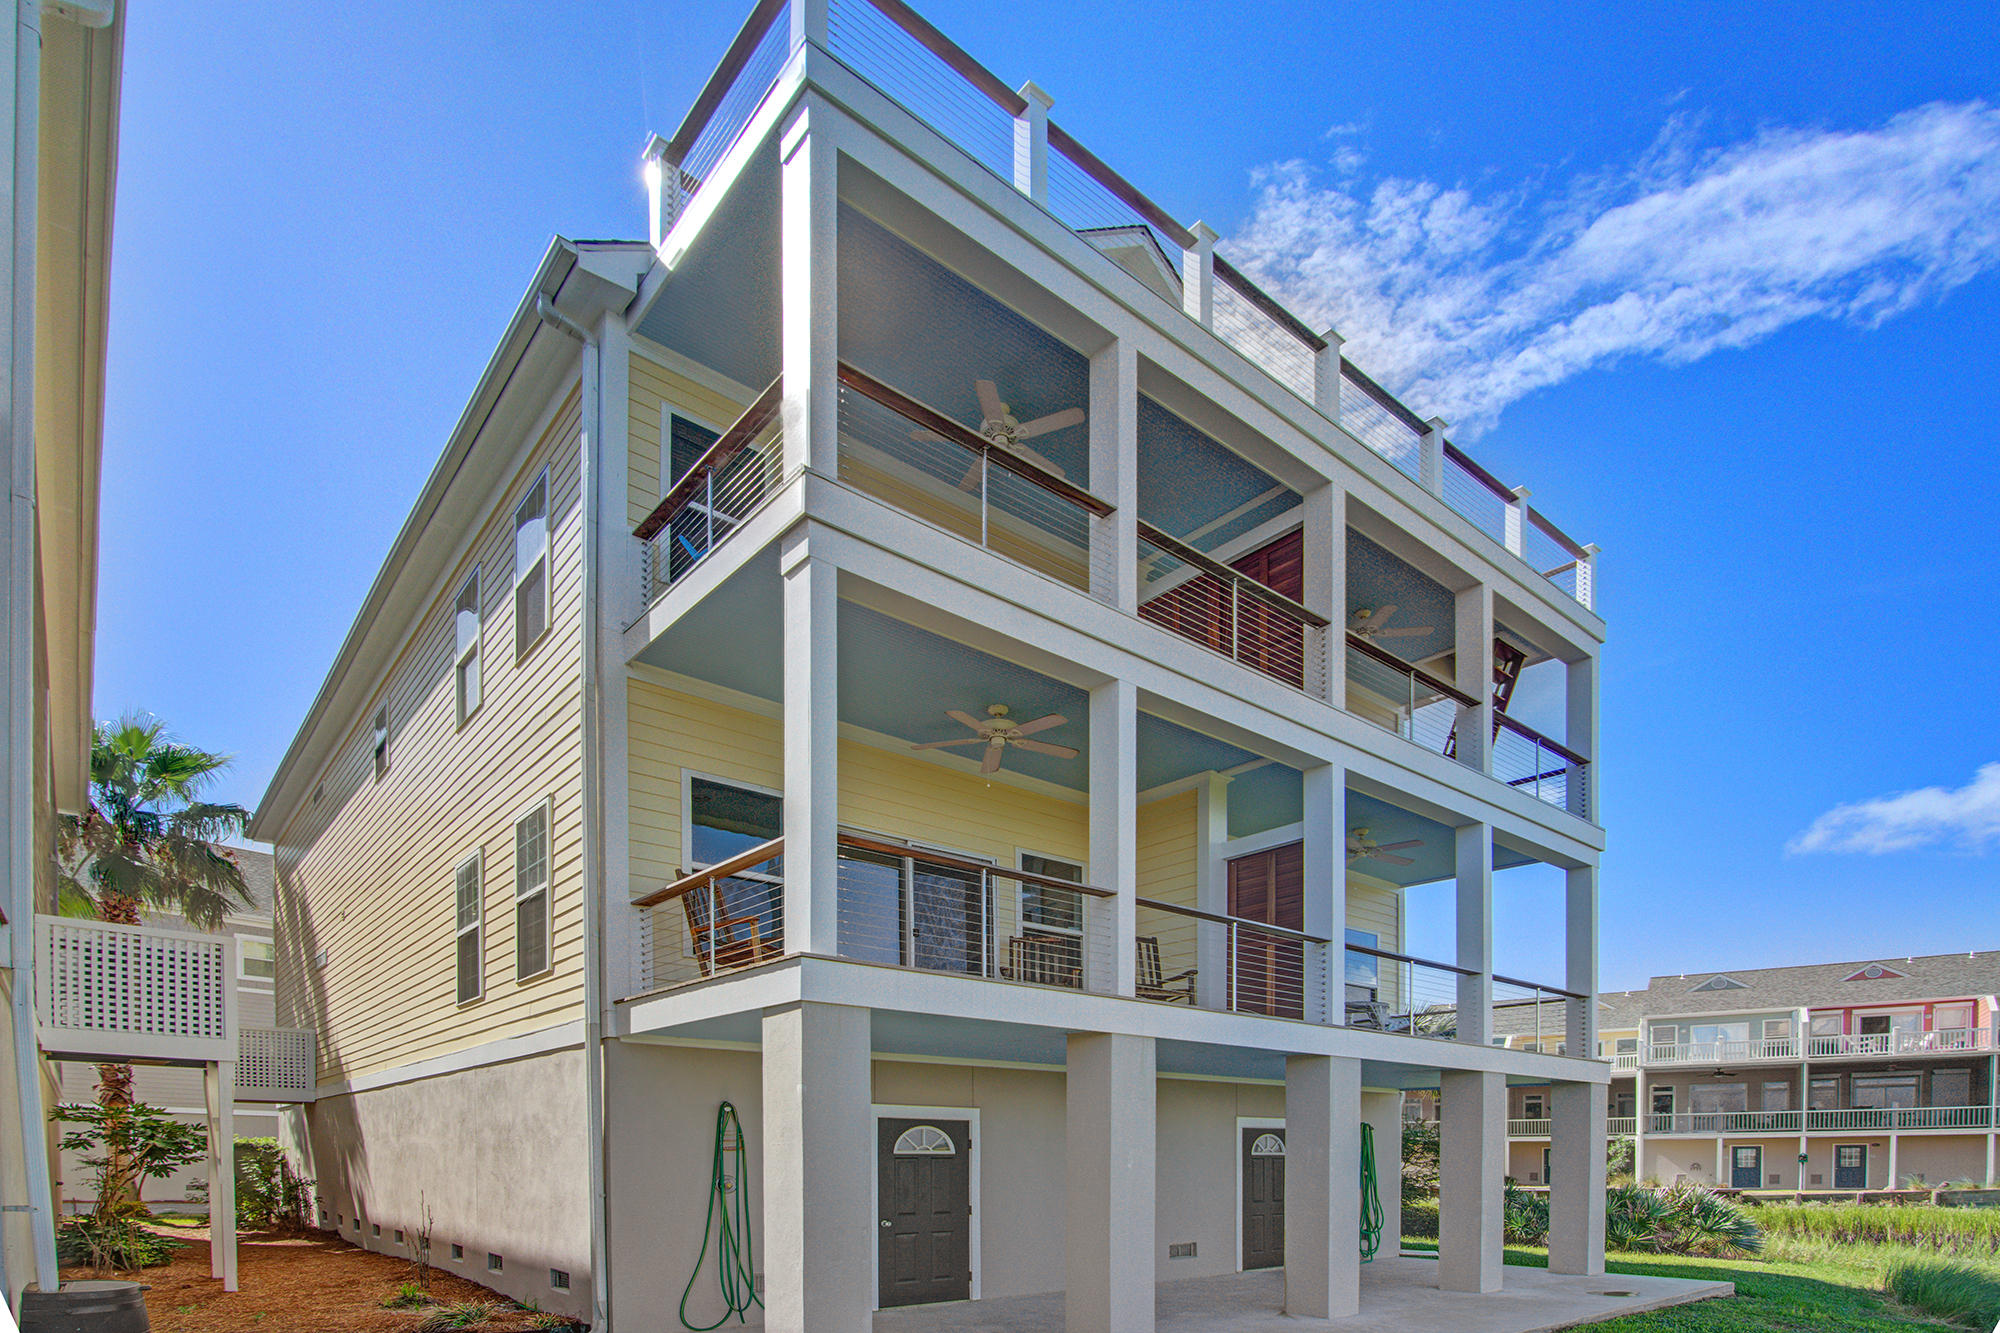 Waters Edge Homes For Sale - 119 2nd, Folly Beach, SC - 5